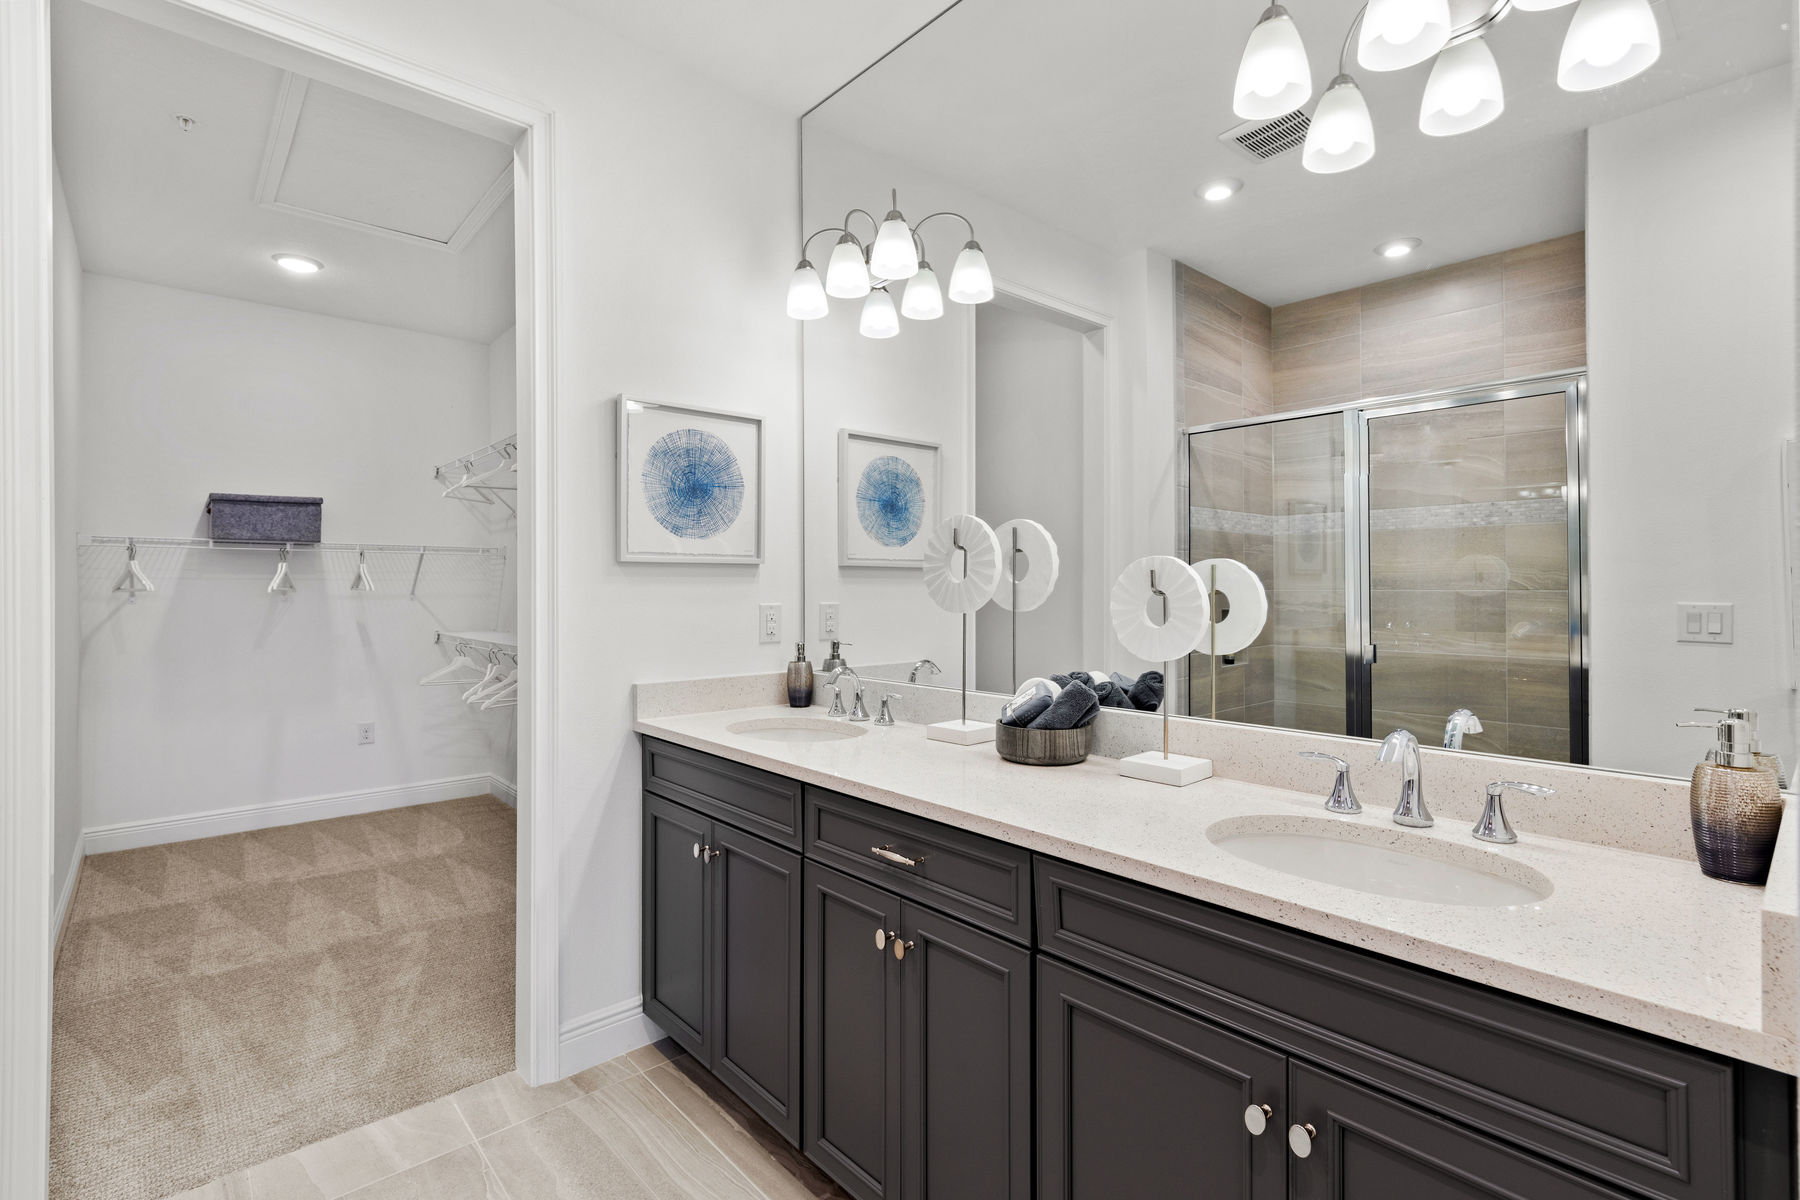 Captiva II Plan Bathroom_Master Bath at Arboretum in Naples Florida by Mattamy Homes